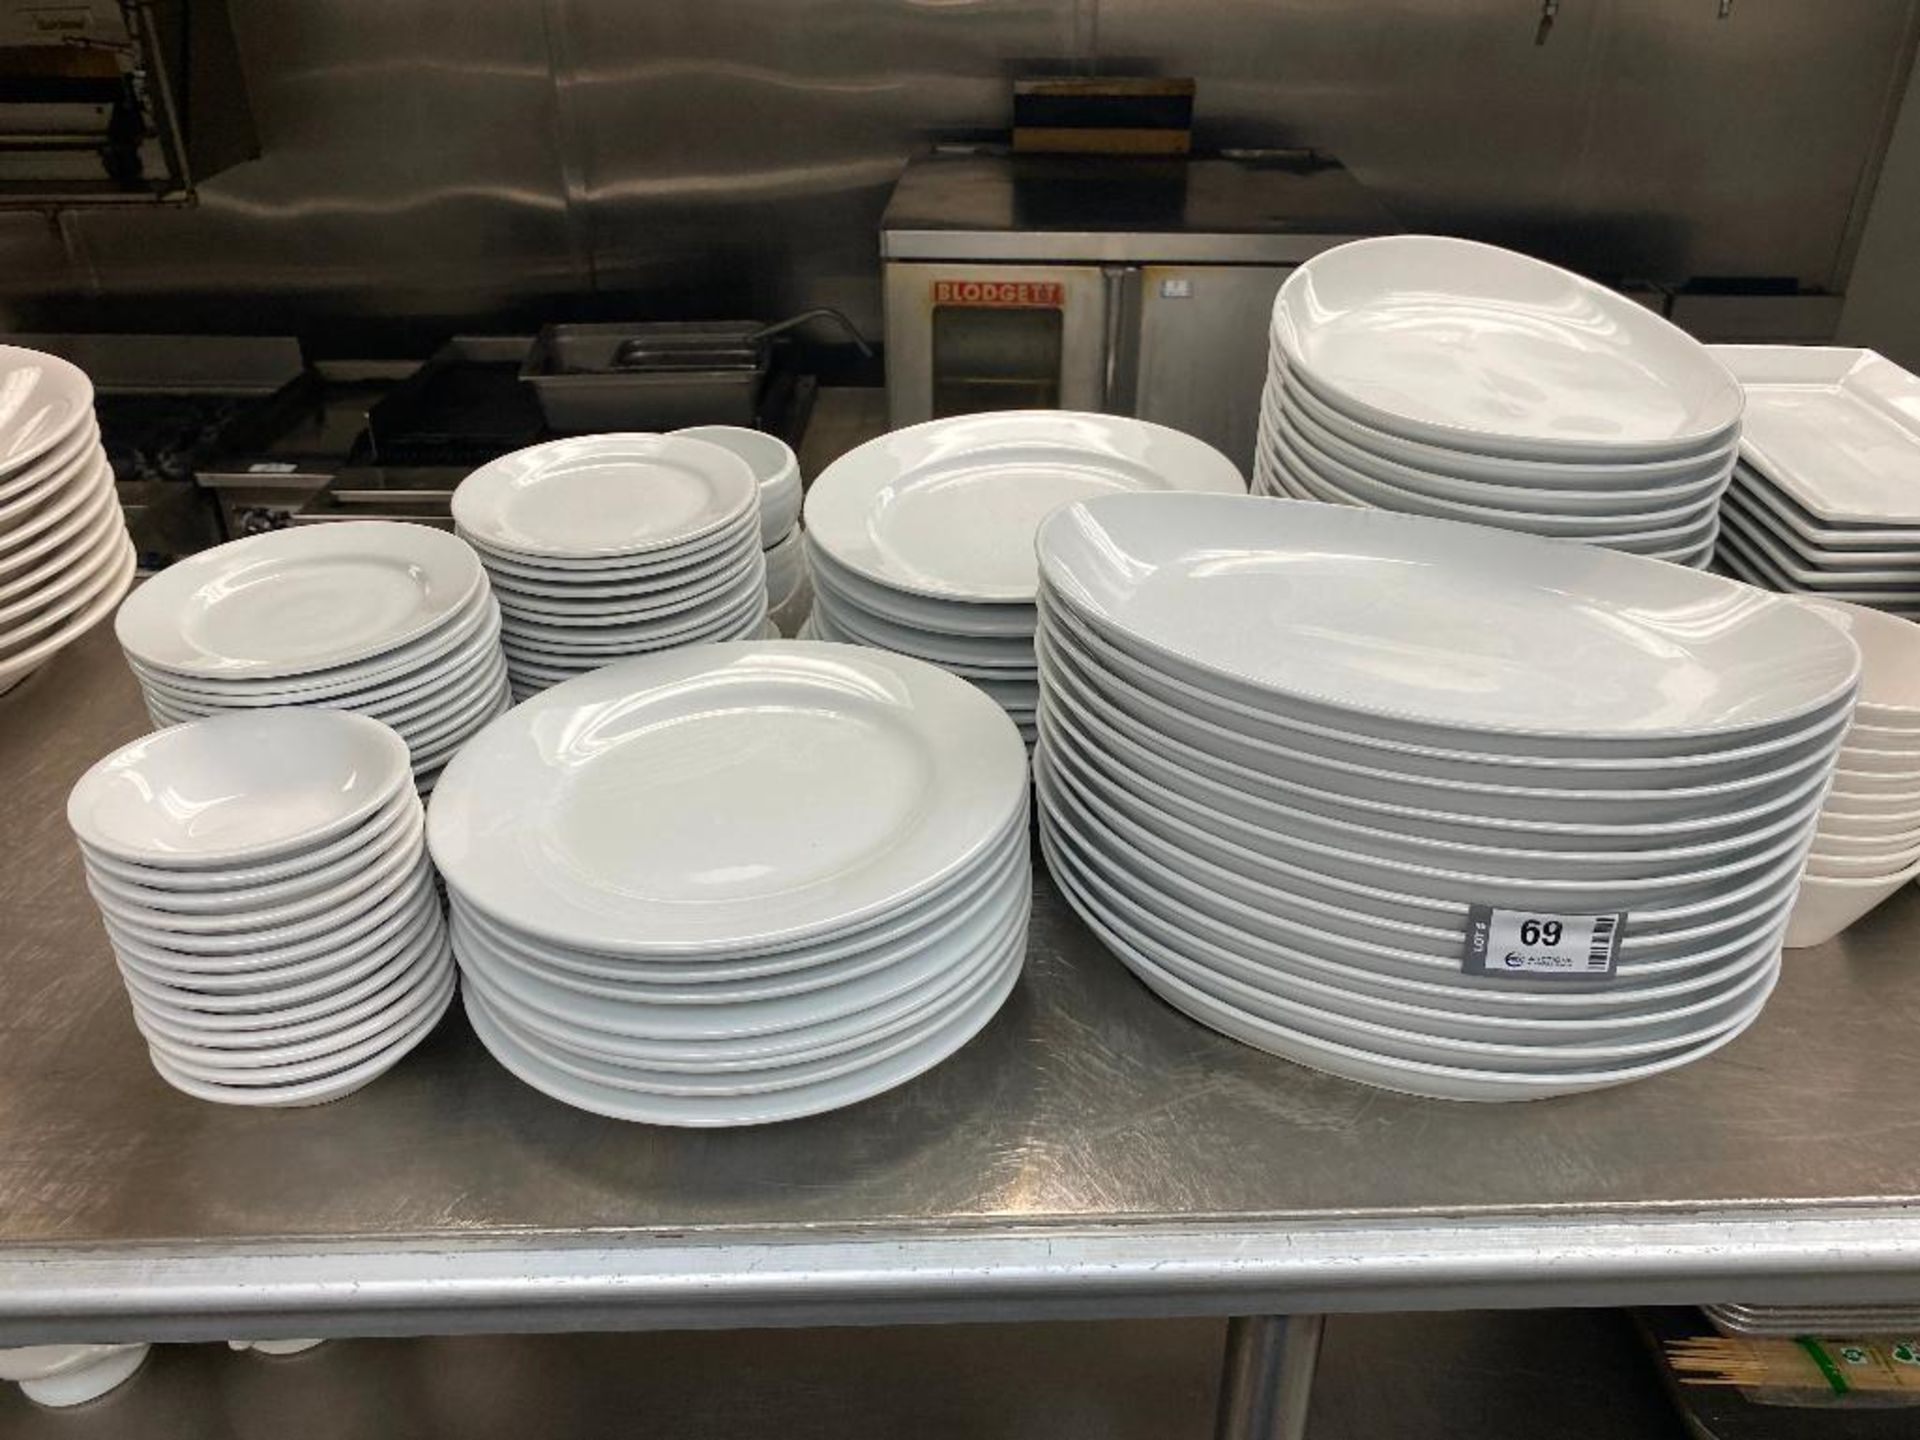 LOT OF ASSORTED DINNERWARE INCLUDING: PLATES, BOWLS, SERVING TRAY - Image 3 of 4